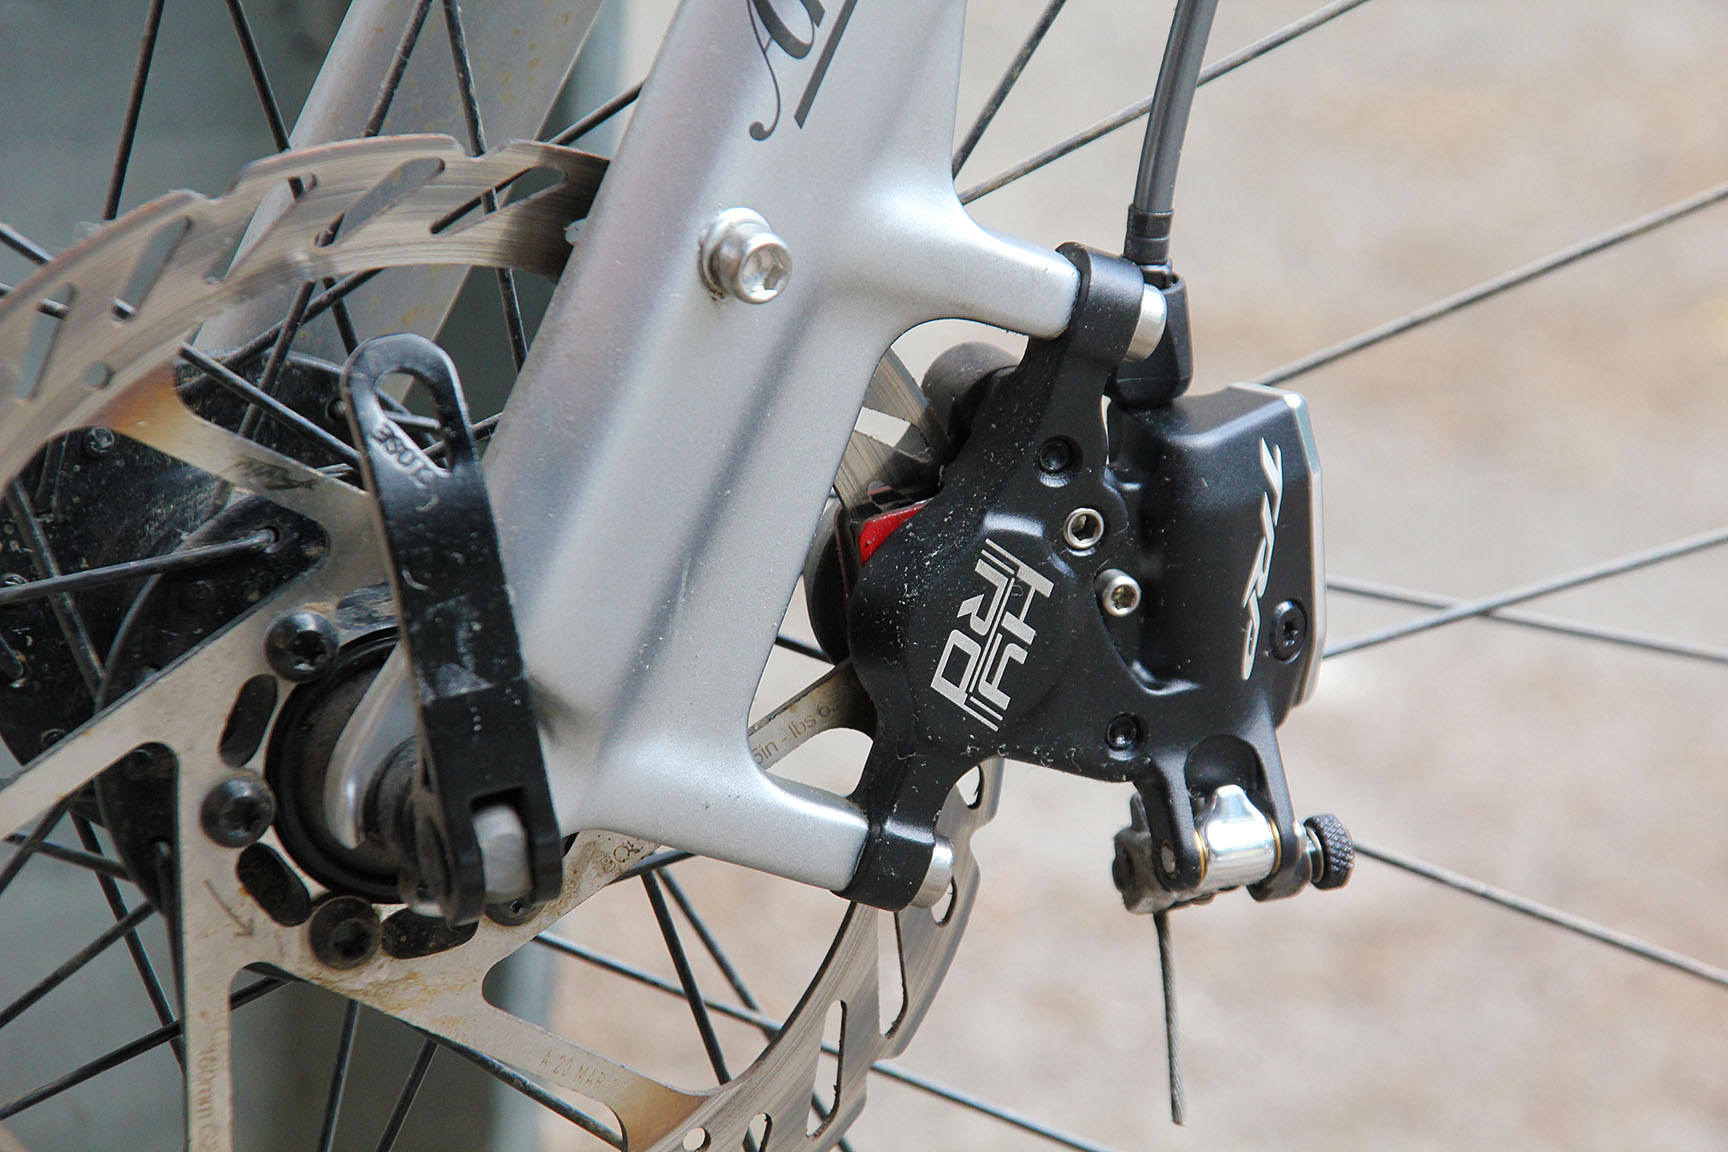 8 Trp Hy Rd Mechanical Interface Hydraulic Disc Brakes 10999 All Info About Auto Repair Brake Force Diagram Hyrd Front